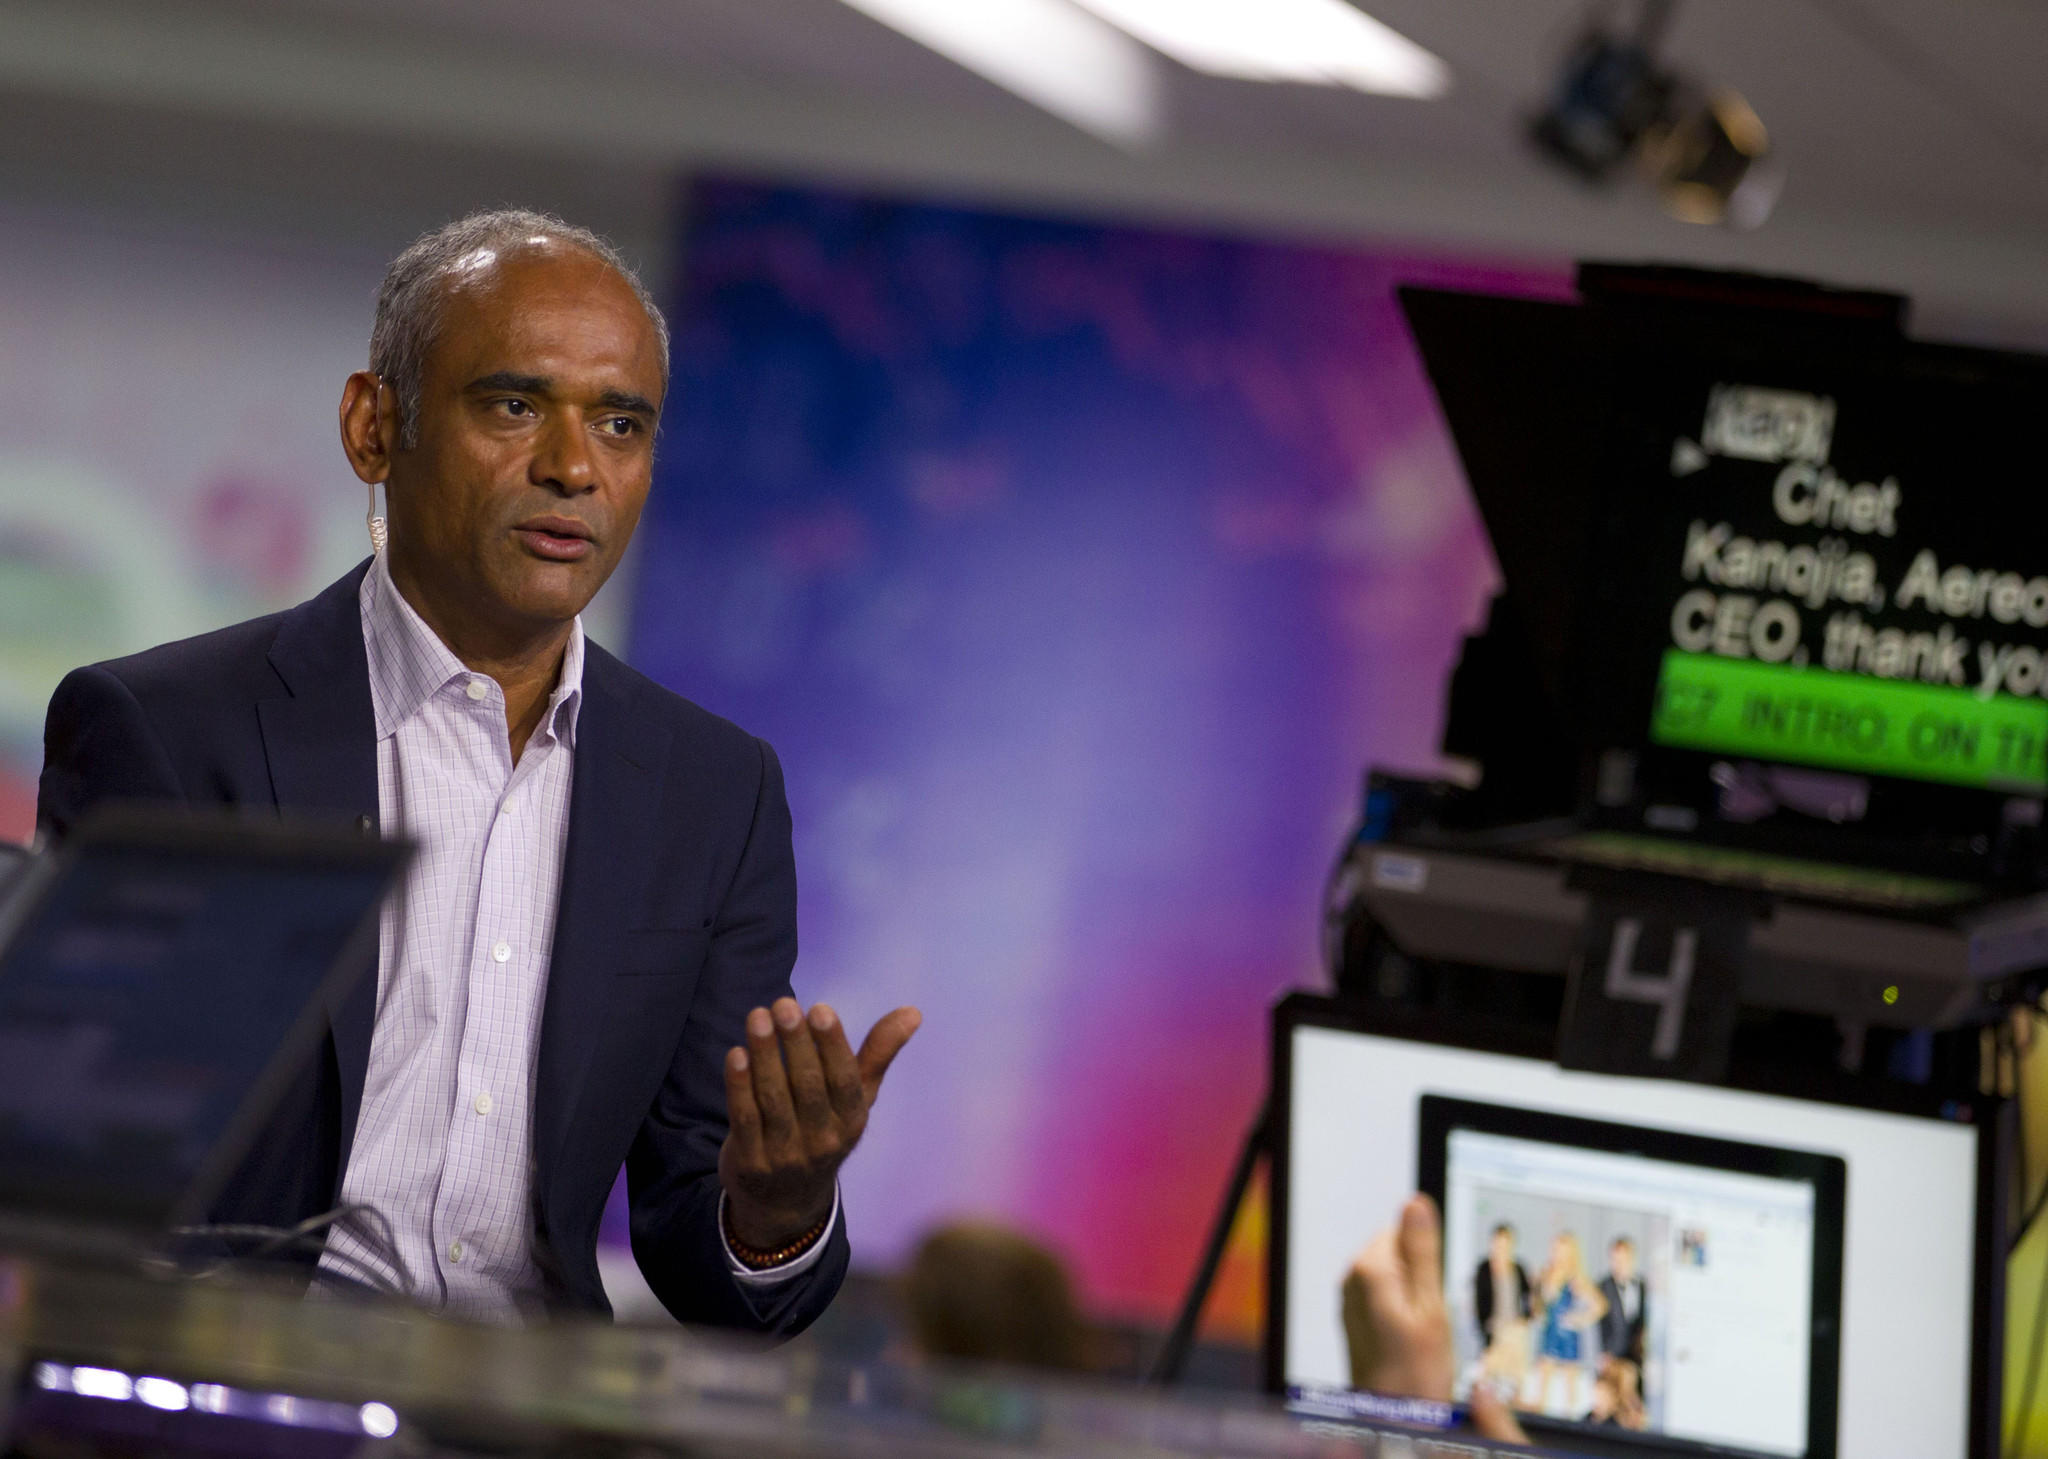 Chet Kanojia, CEO of Aereo Inc., which faces legal challenges from broadcasters.